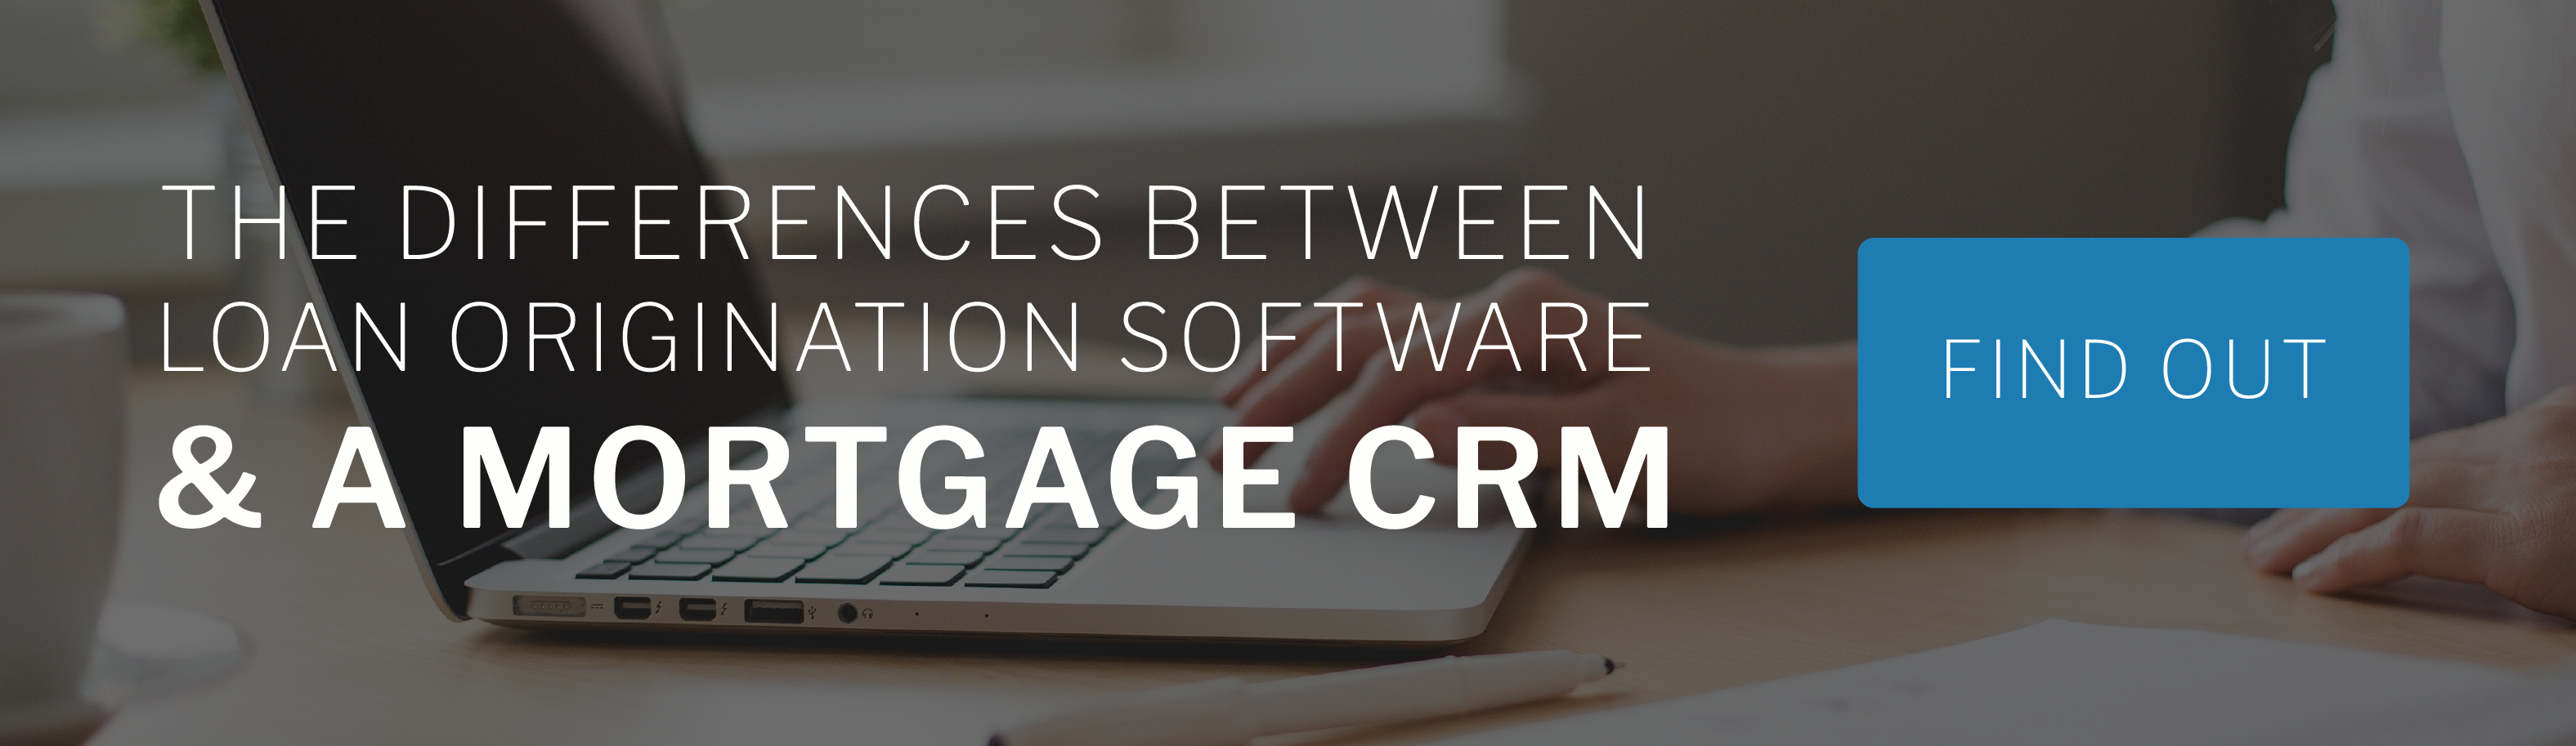 What are the differences between loan origination software & a mortgage CRM?